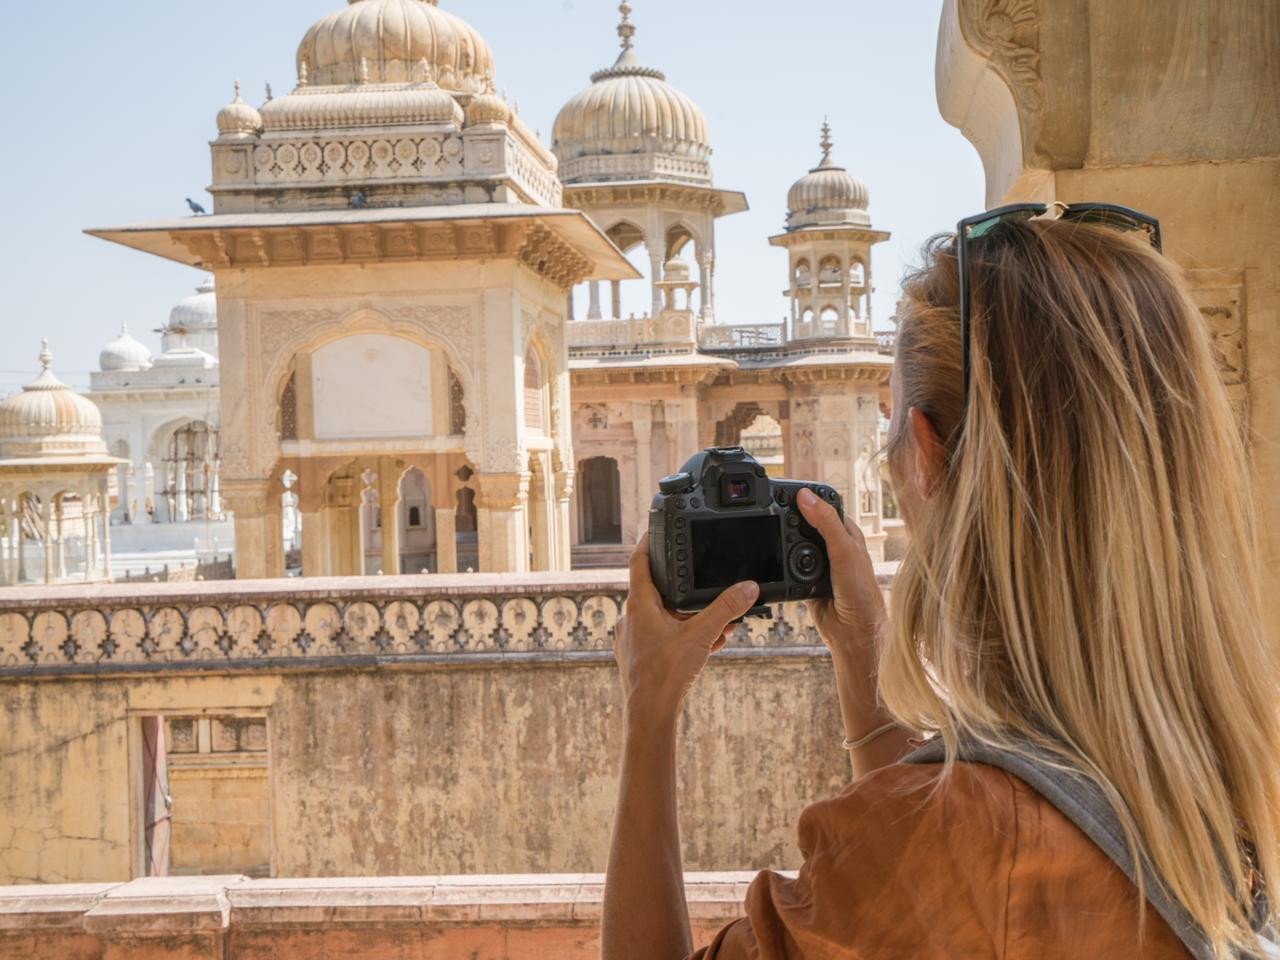 Tourist photographing ancient temple using camera, Jaipur, Rajasthan, India. People travel Asia concept